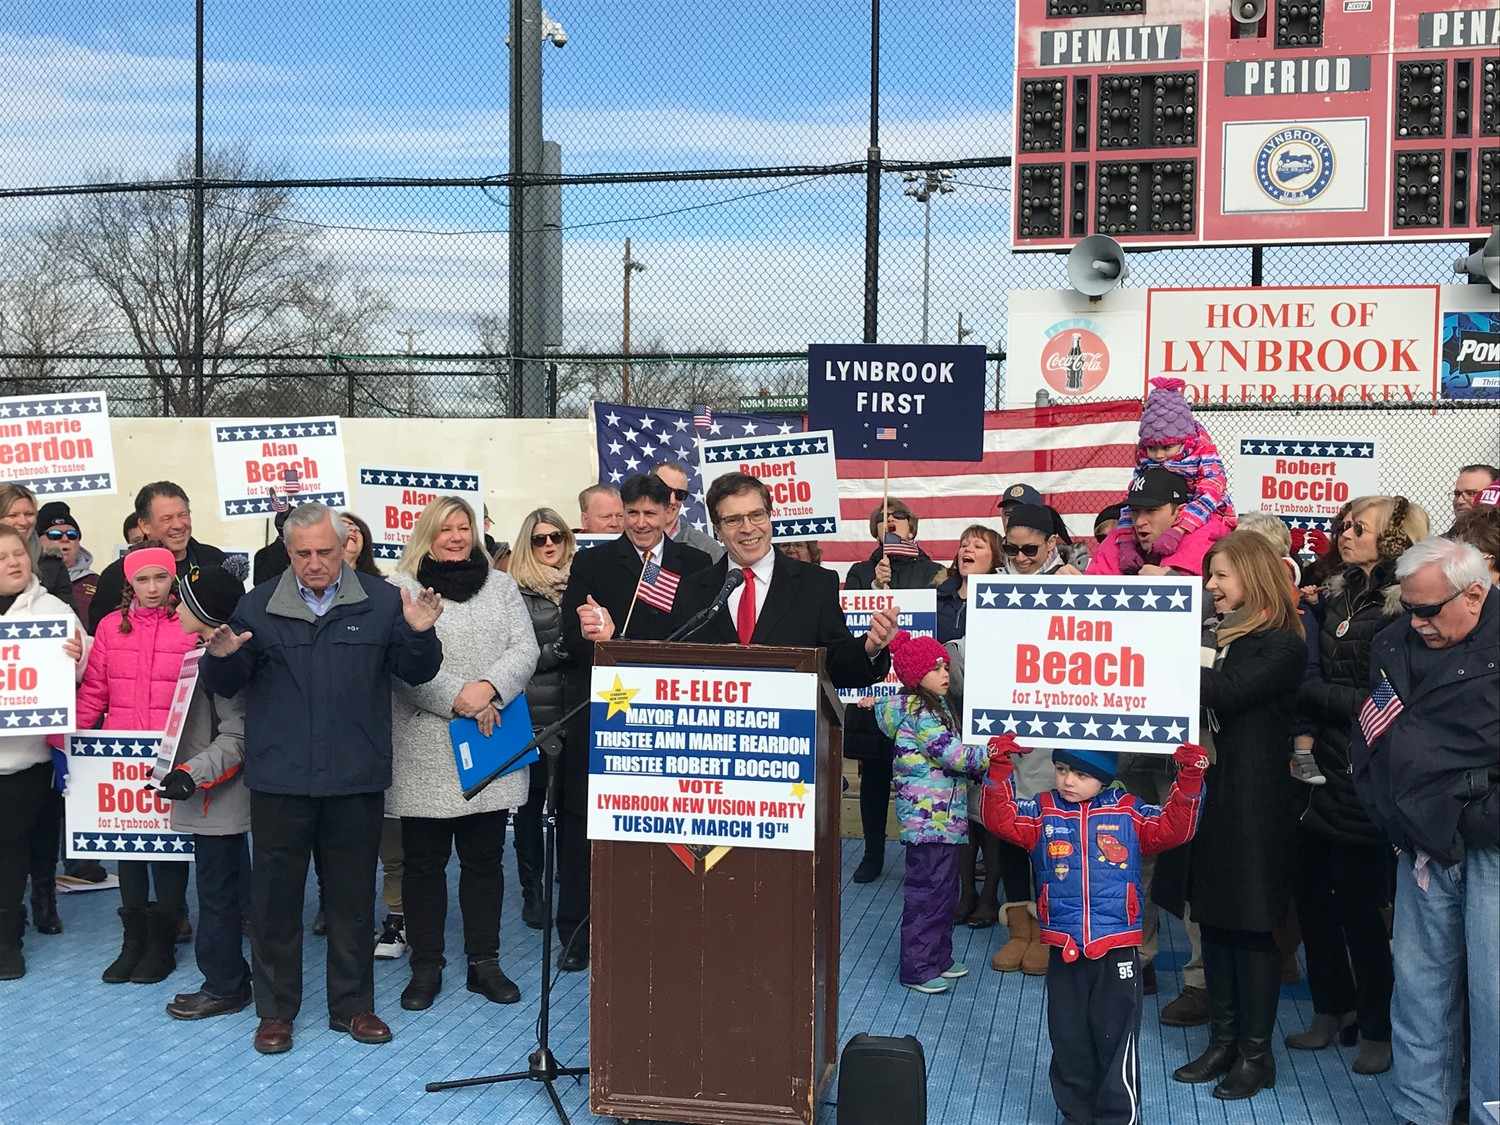 Standing before dozens of supporters, Mayor Alan Beach detailed his plan to run for re-election on March 19 on the Lynbrook New Vision Party line, along with Trustees Ann Marie Reardon and Robert Boccio.